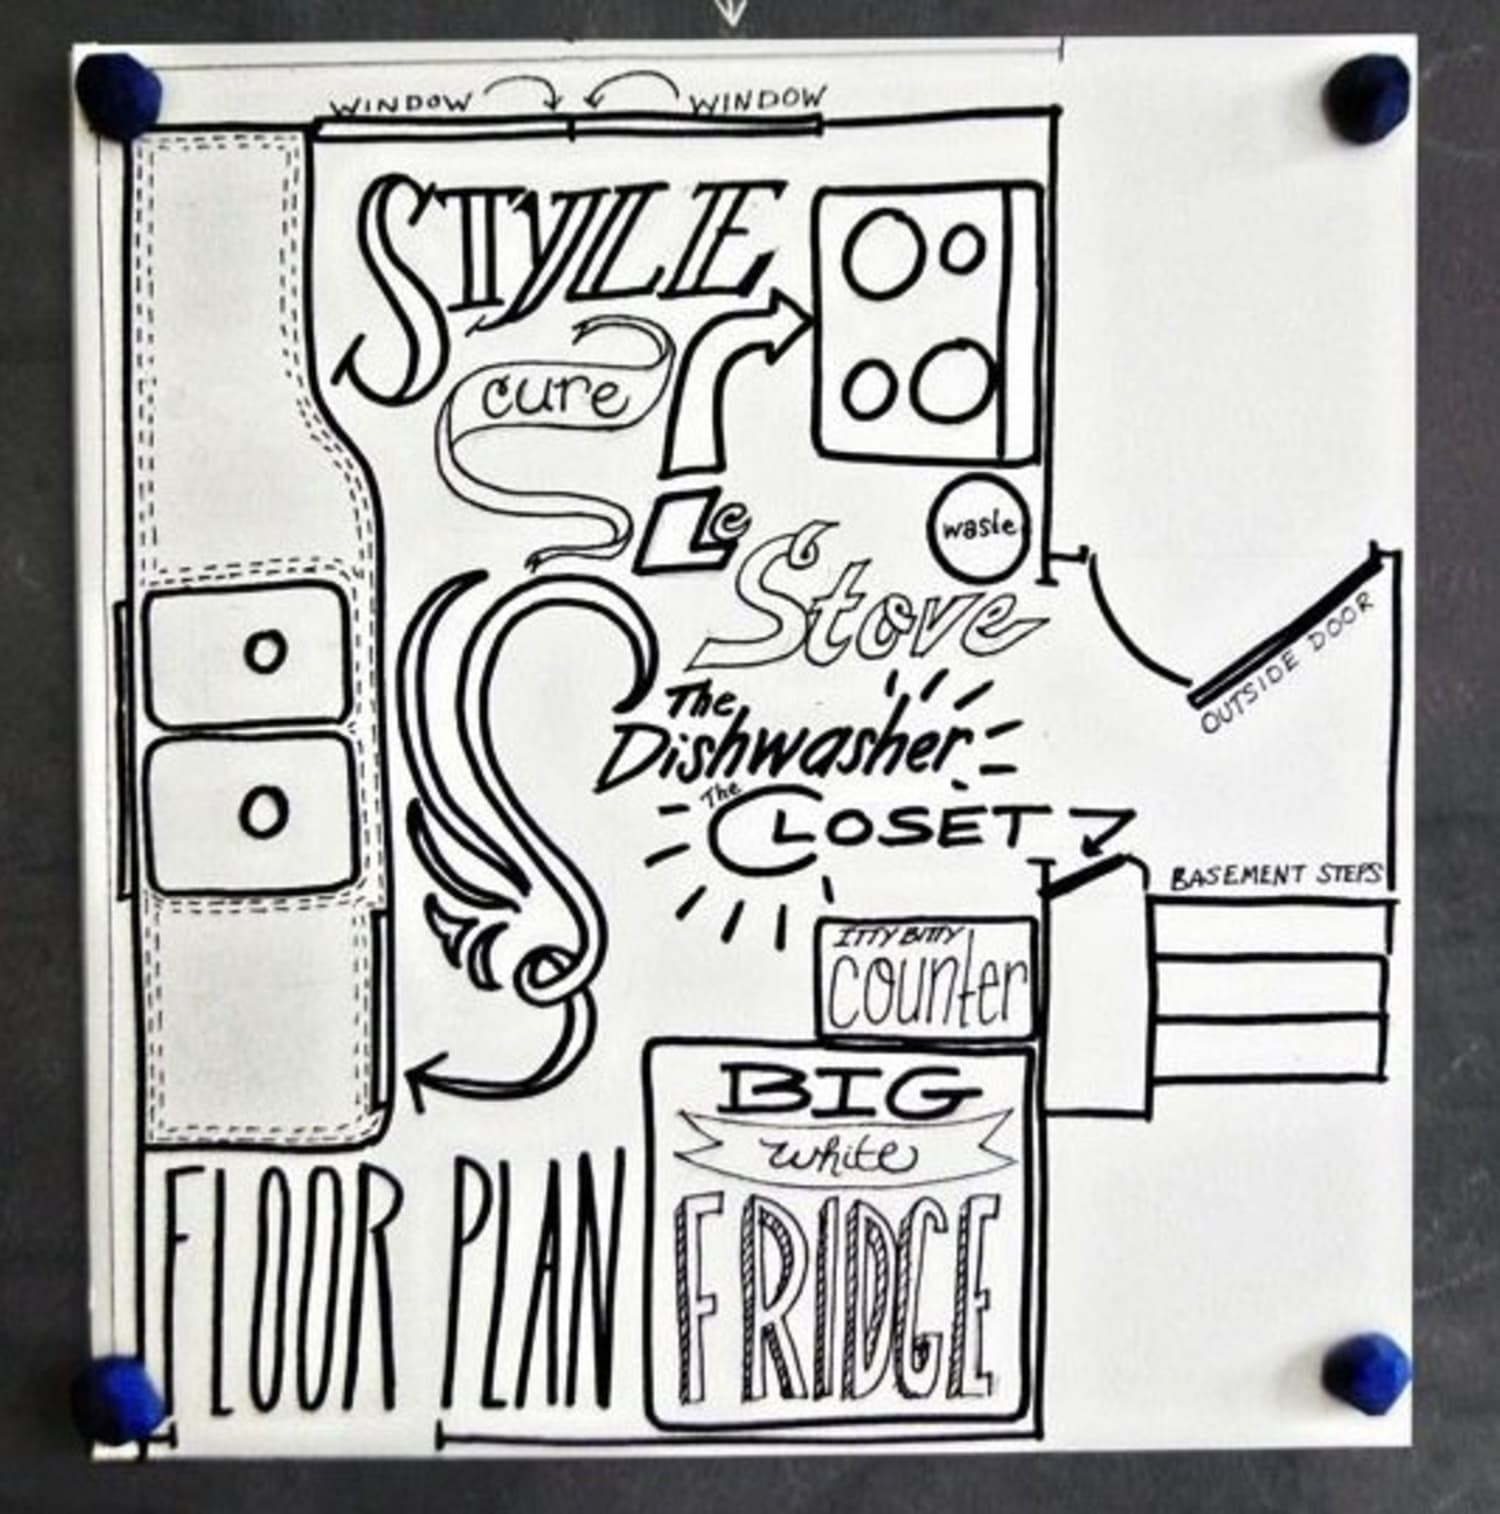 Focus on a Floor Plan